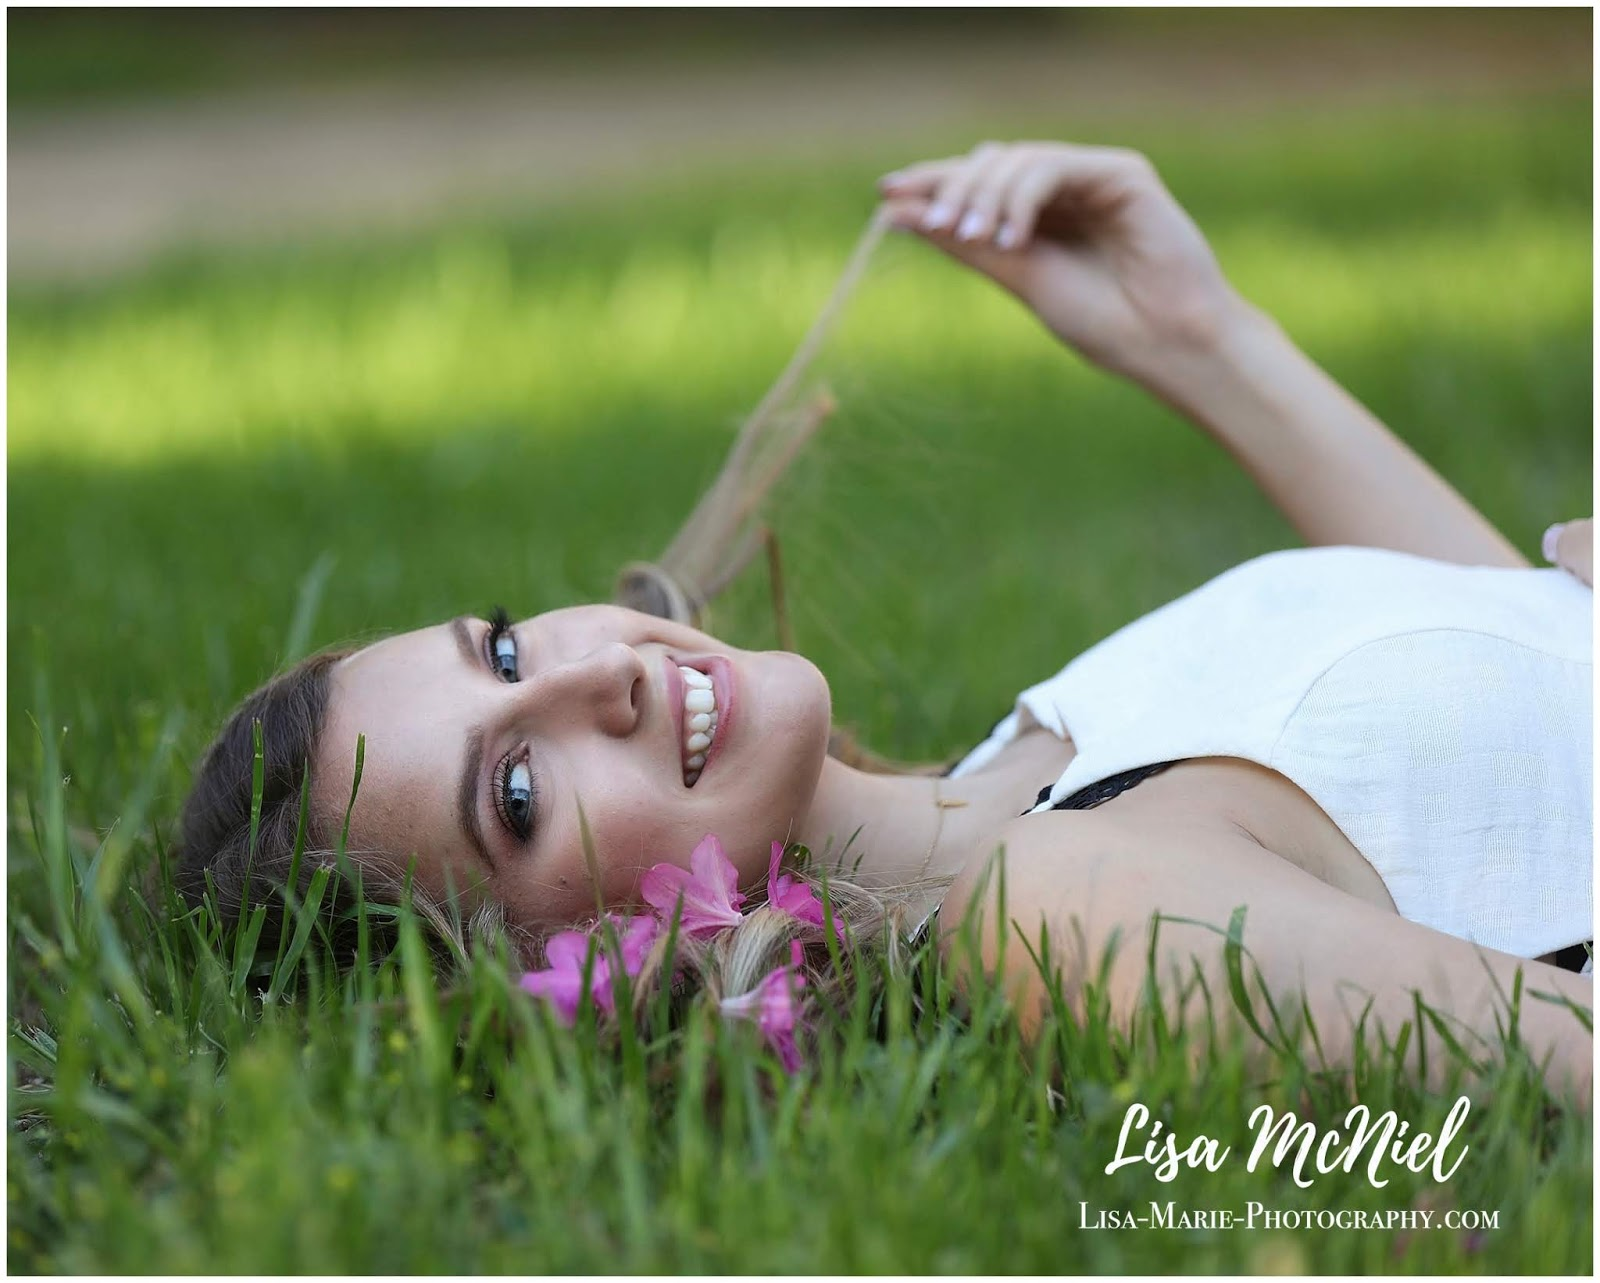 teen girl in flowers and grass